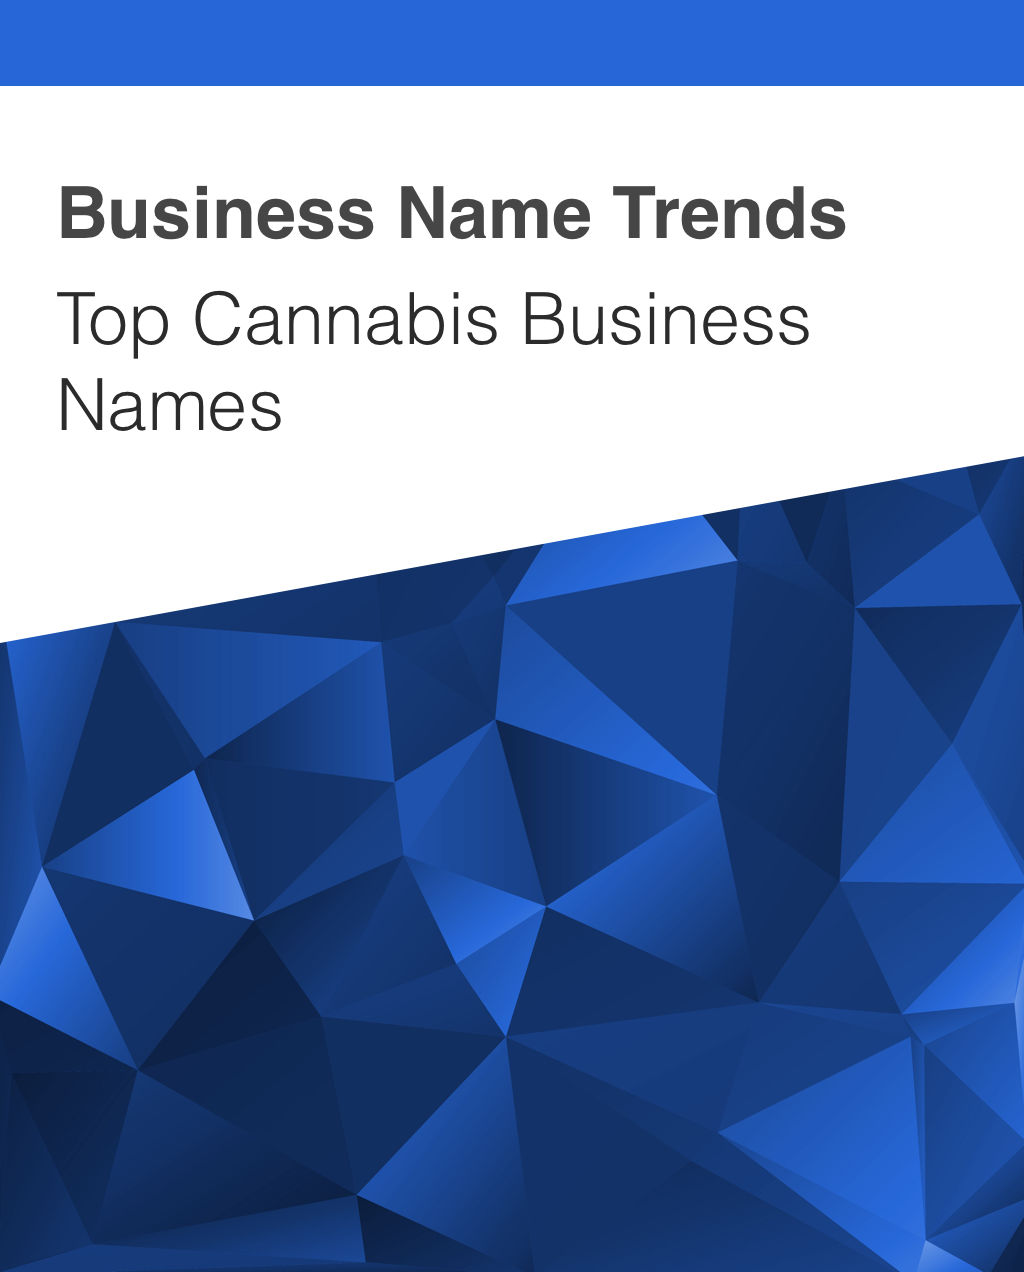 Business Name Trends